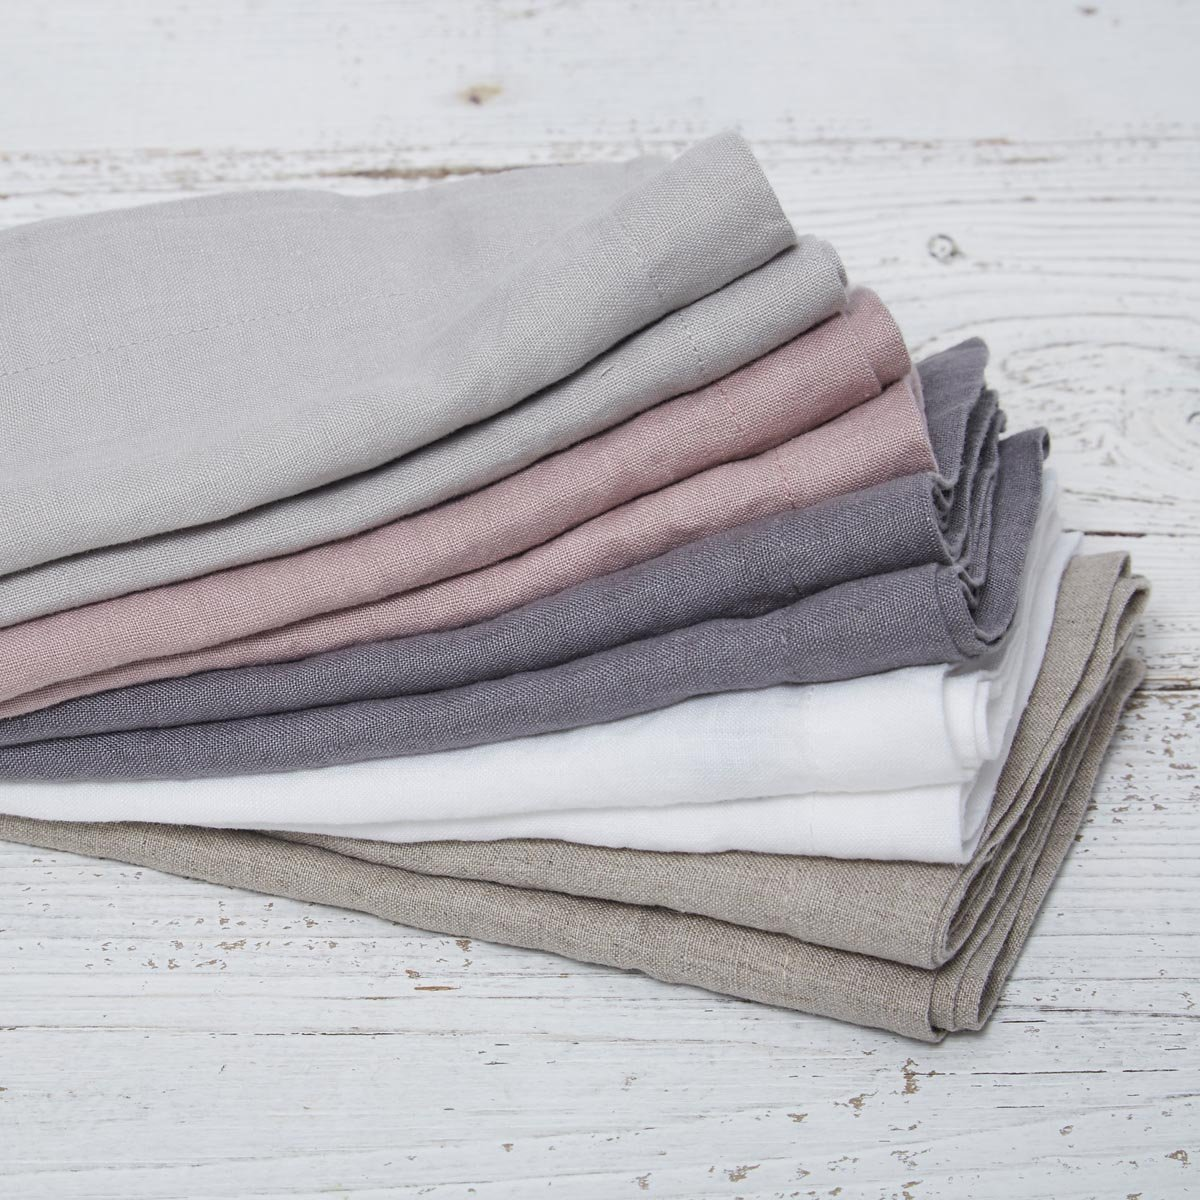 Dove grey linen place mats, £28, Tolly McRae